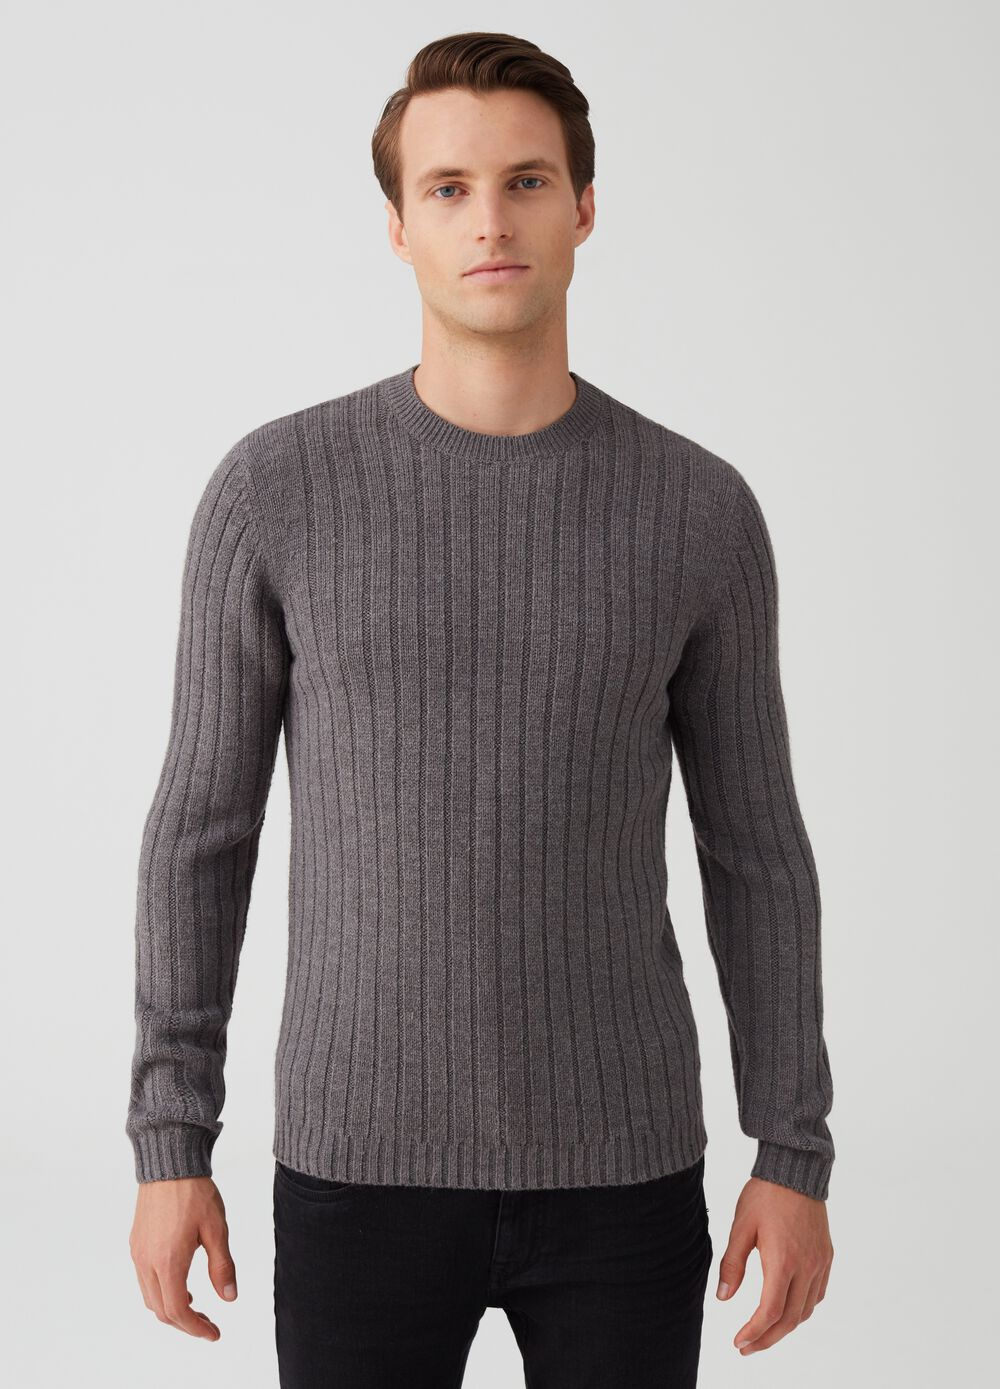 Solid colour pullover with striped weave